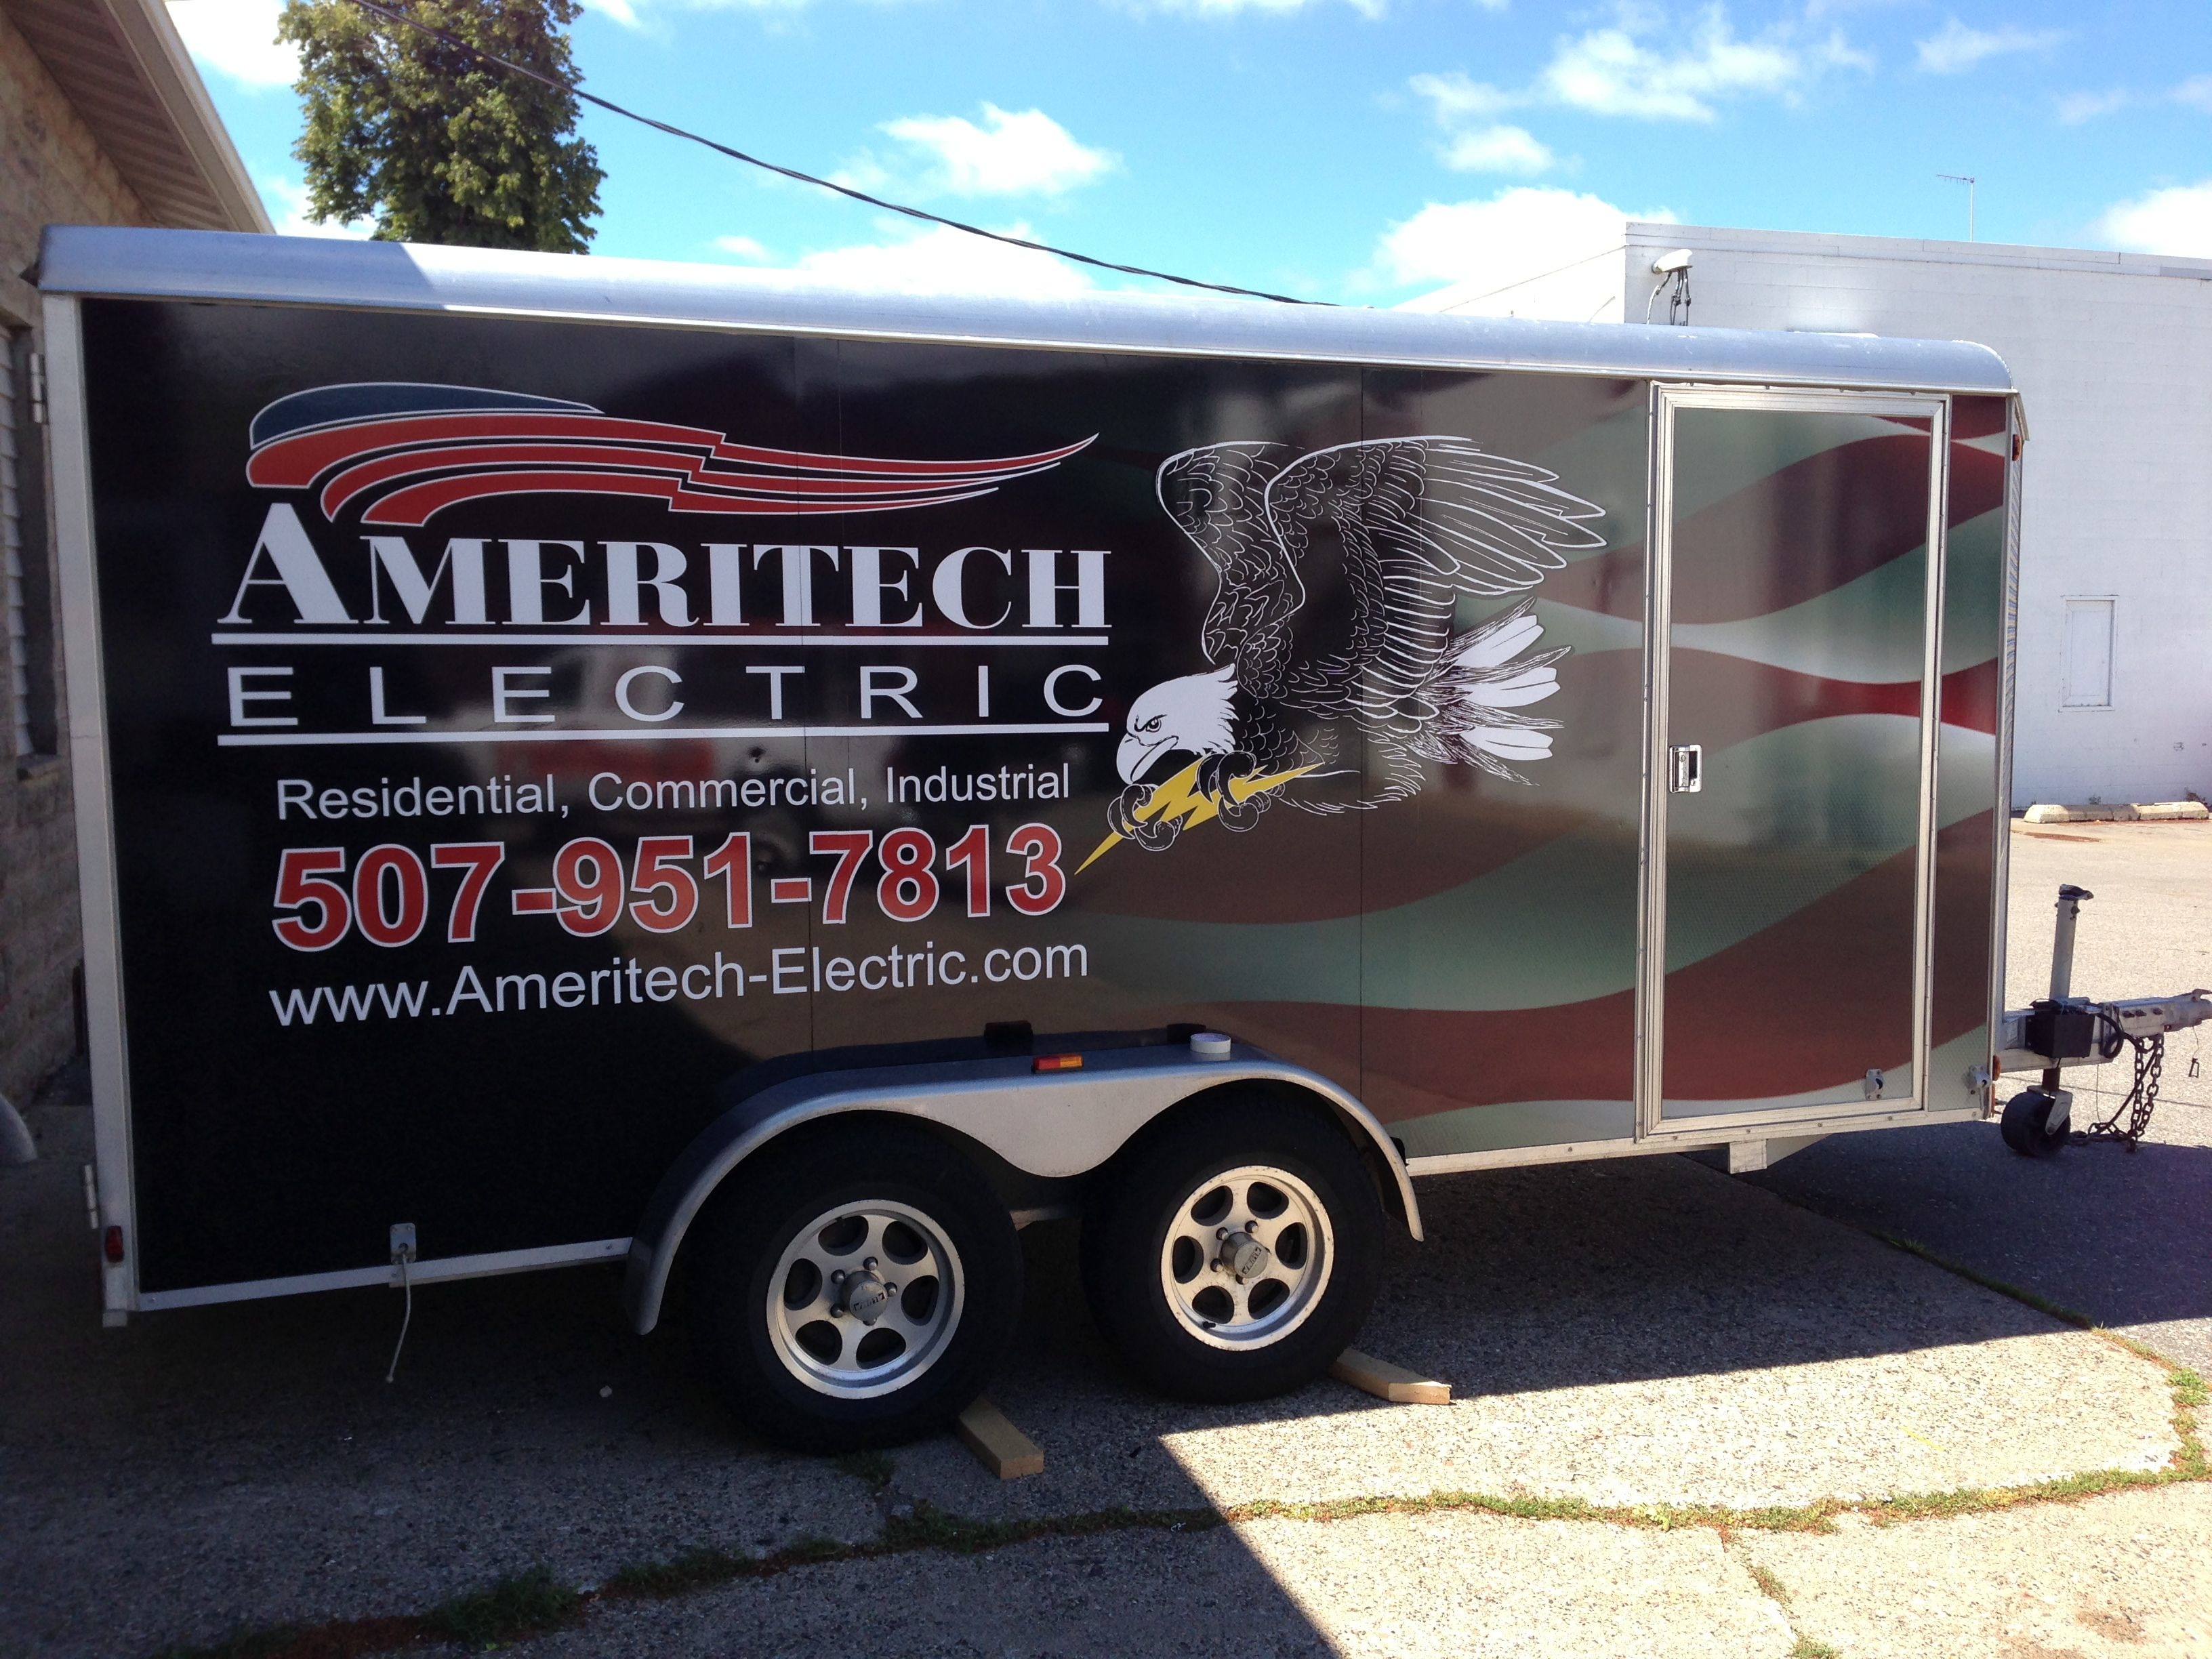 Ameritech Electric